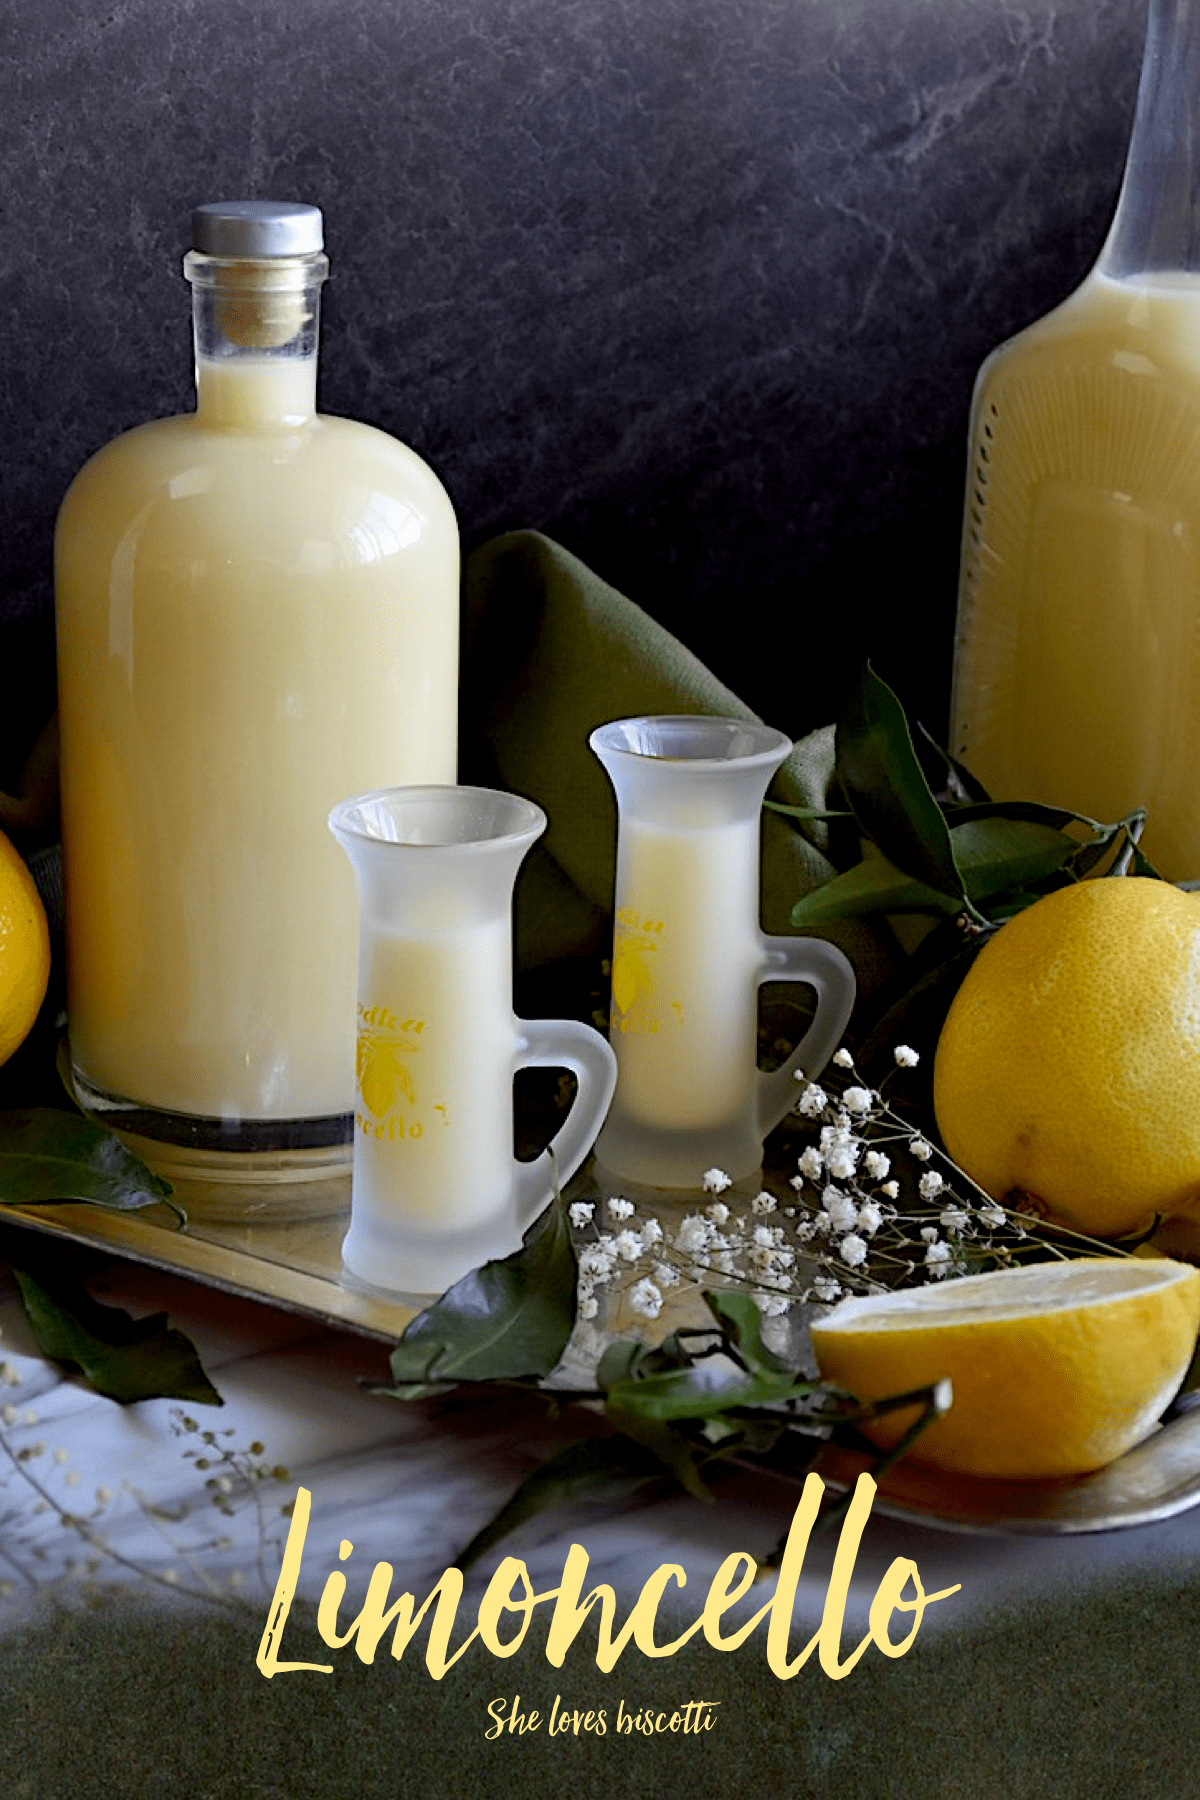 Limoncello Cream is a wonderful Italian liquor, flavored with lemons. It's also a great ingredient to use in baking. #Italianliquor #homemade #diy #limoncello #lemons